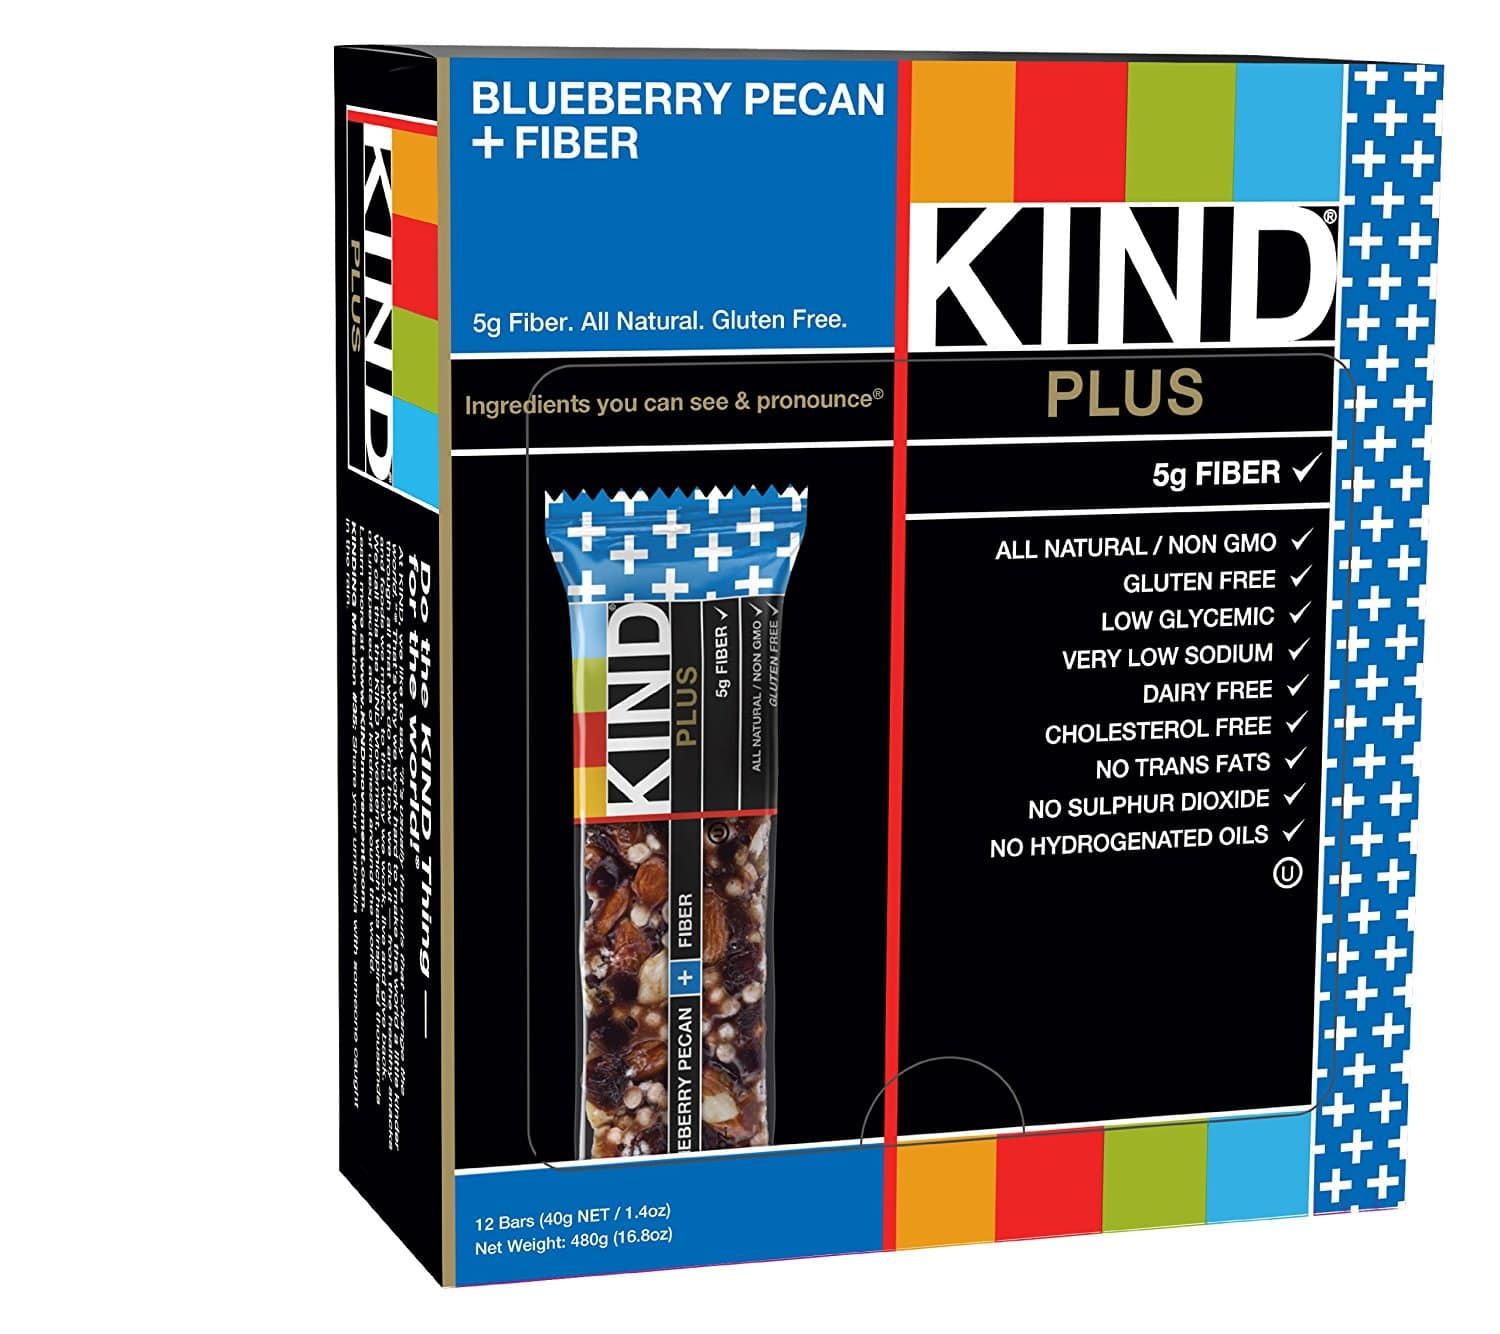 Back in Stock Amazon has 12-Count 1.4oz Kind Bars (Blueberry Pecan + Fiber) for $9.83 when you checkout via Subscribe & Save. Shipping is free with Subscribe and Save